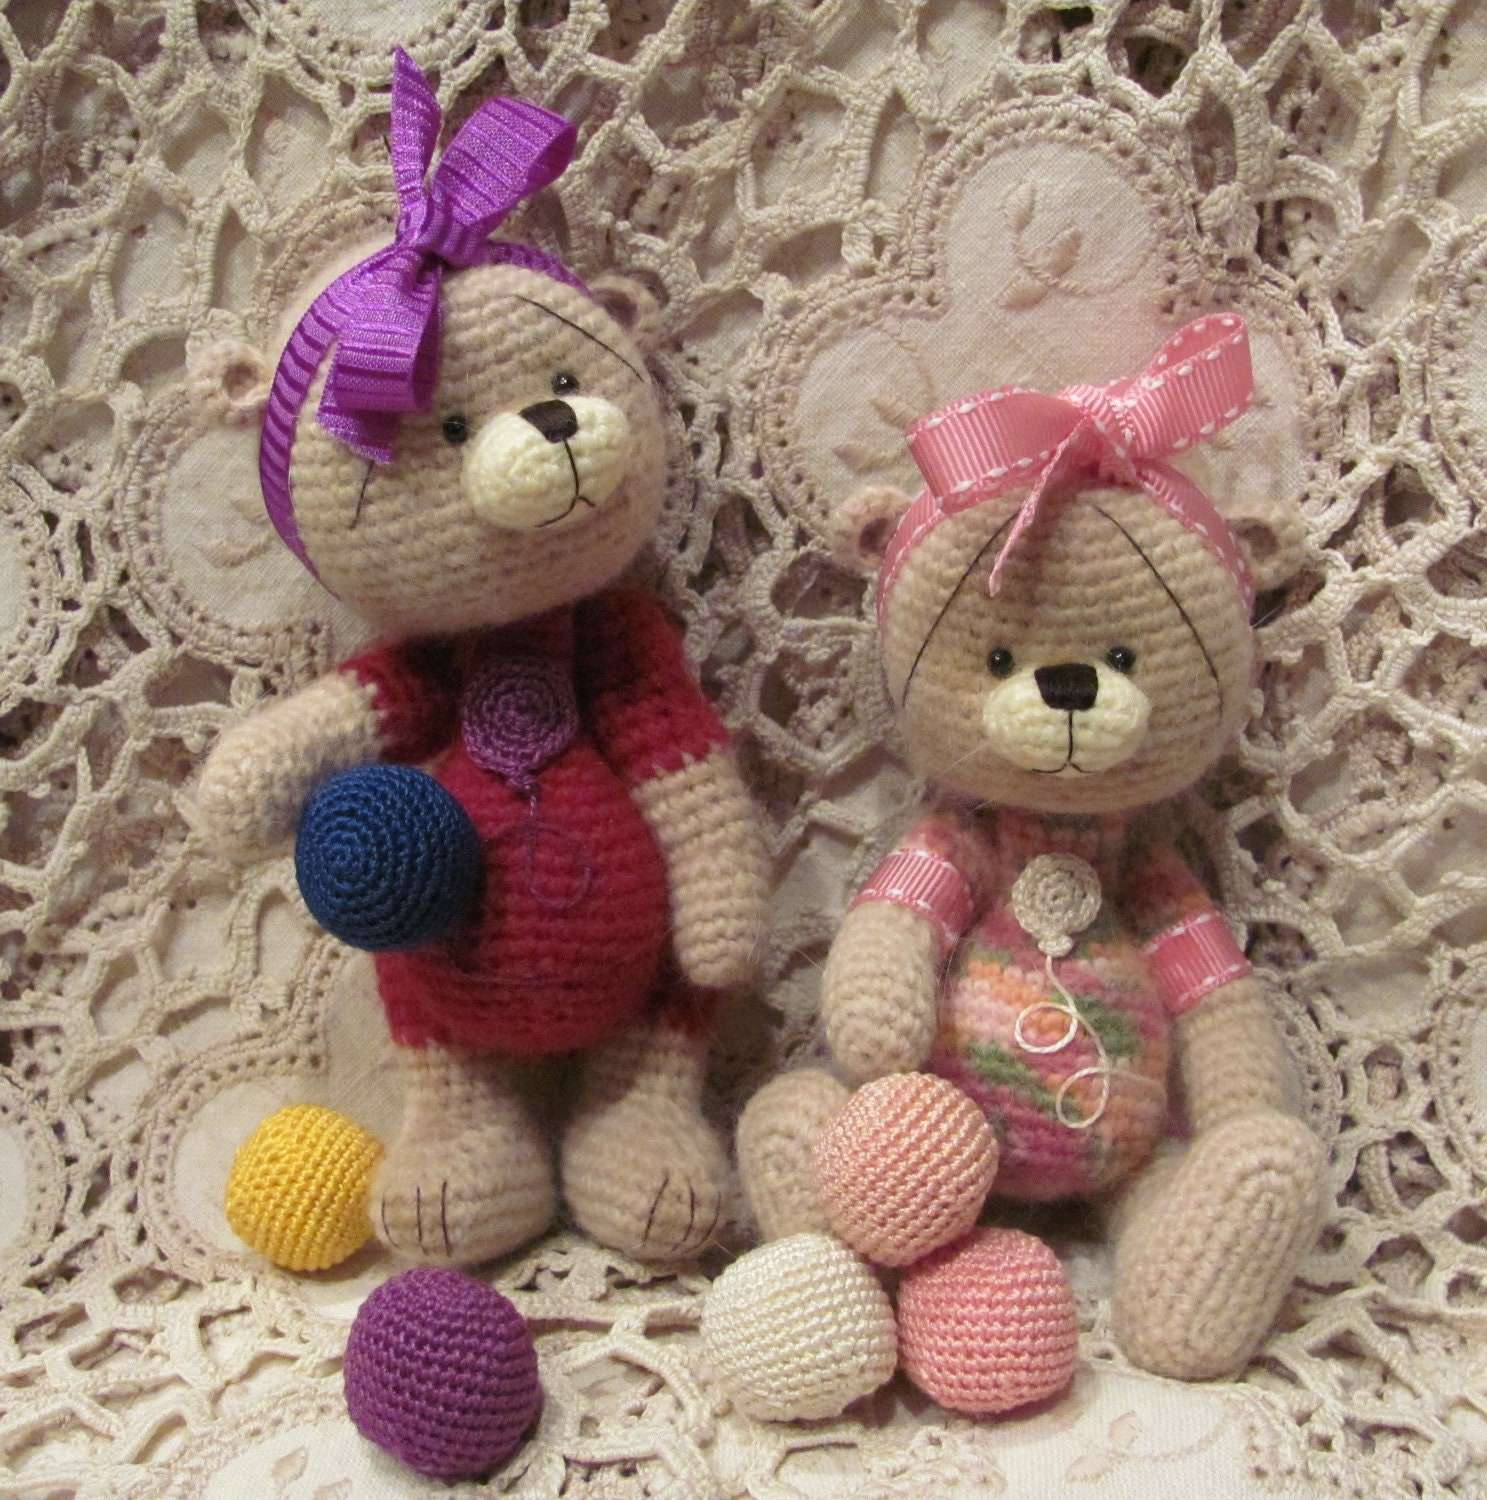 Free Crochet Mini Teddy Bear Pattern : il_570xN.407549165_46uz.jpg